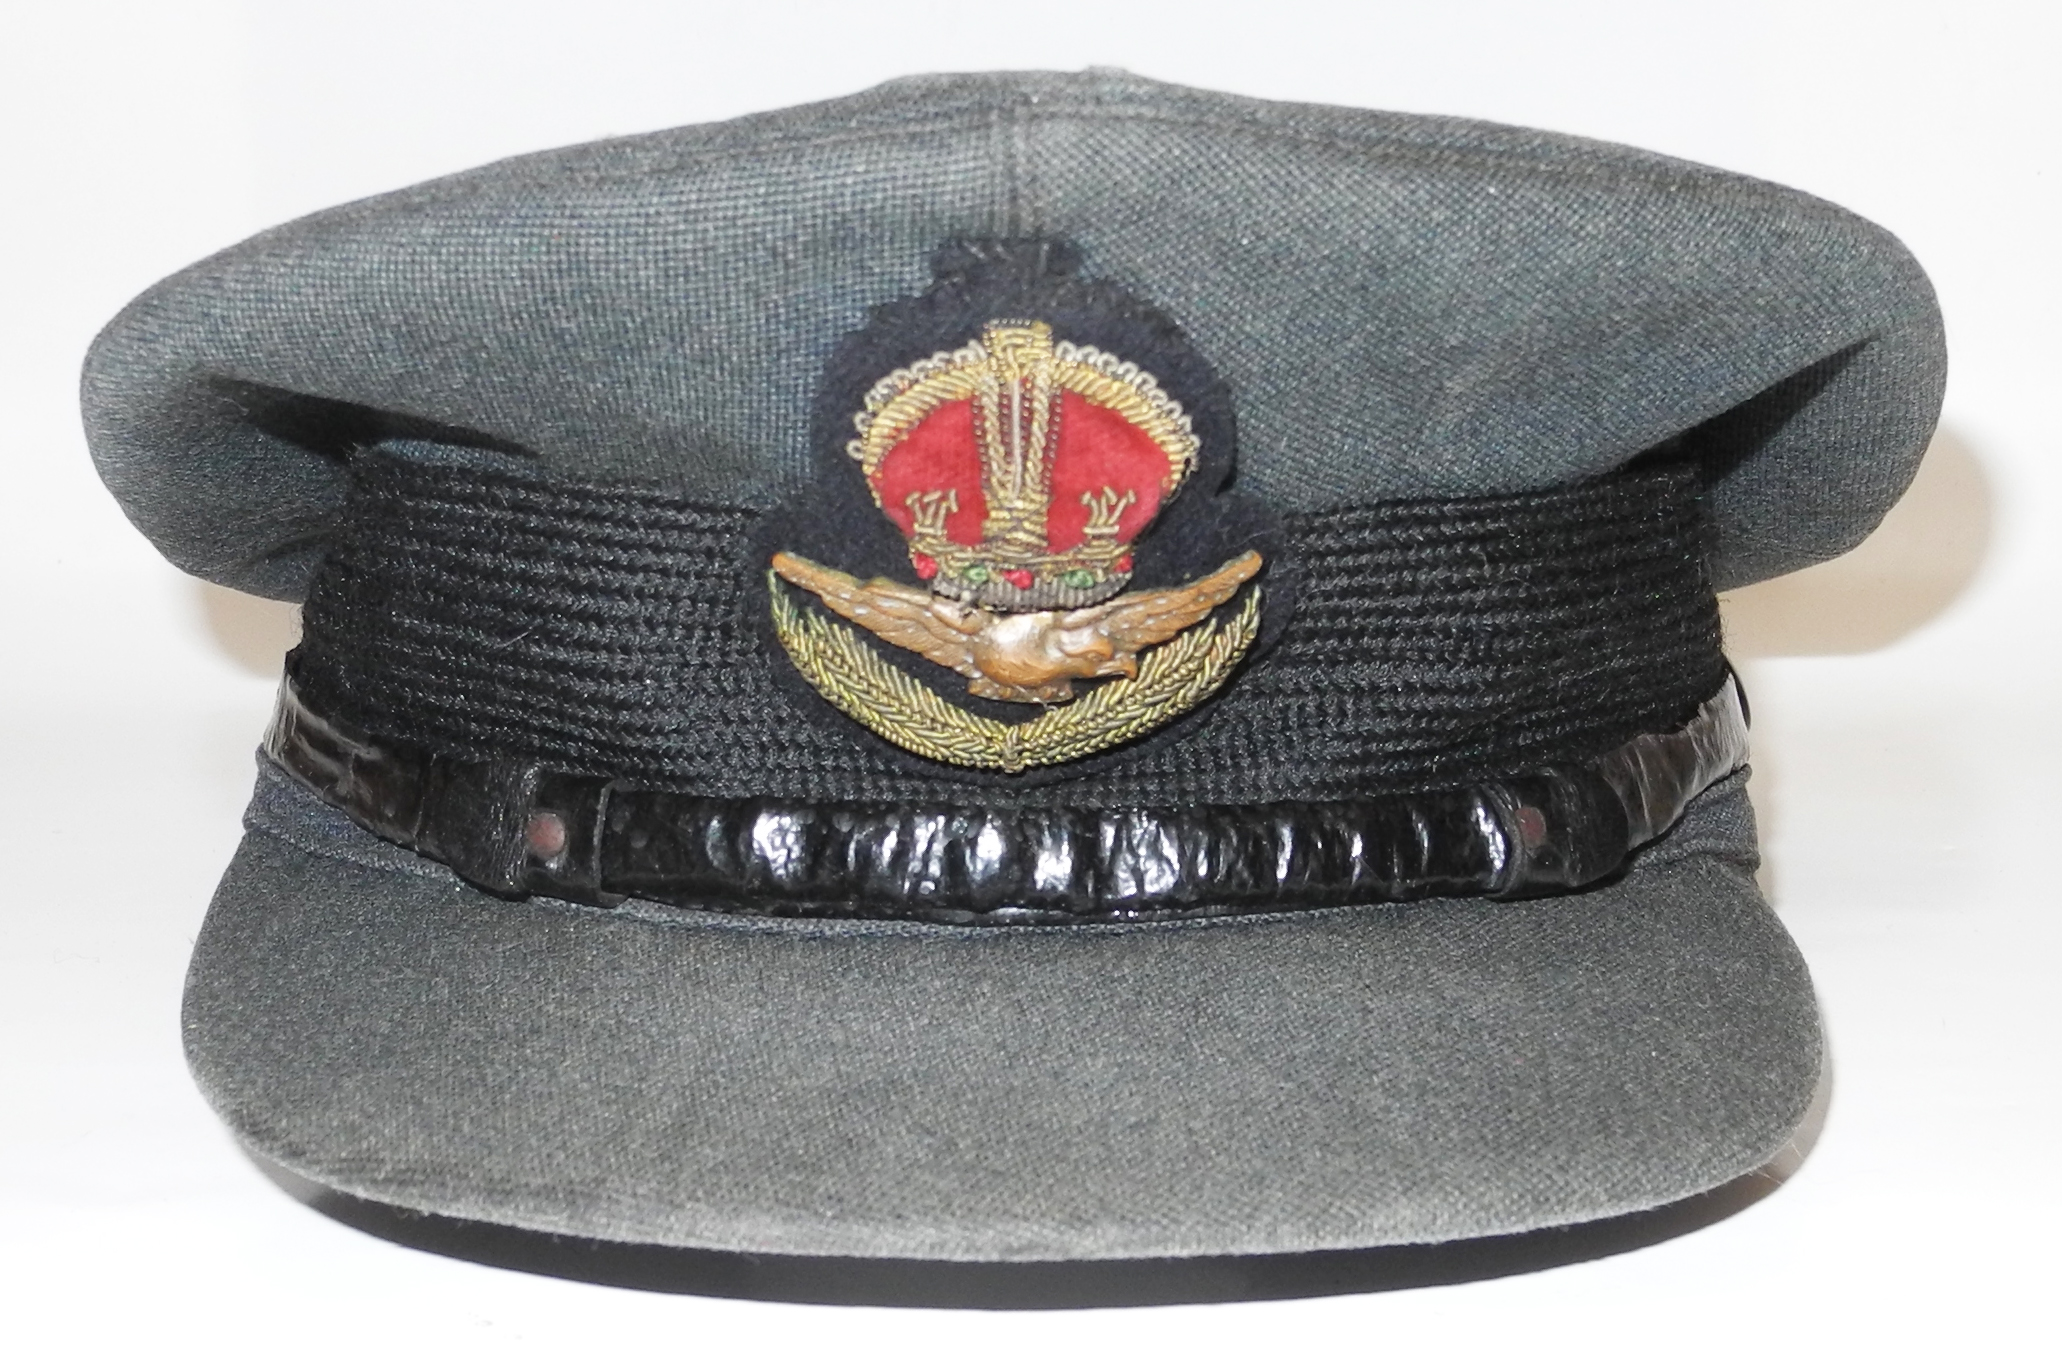 RAF/RCAF officer's service dress peaked cap